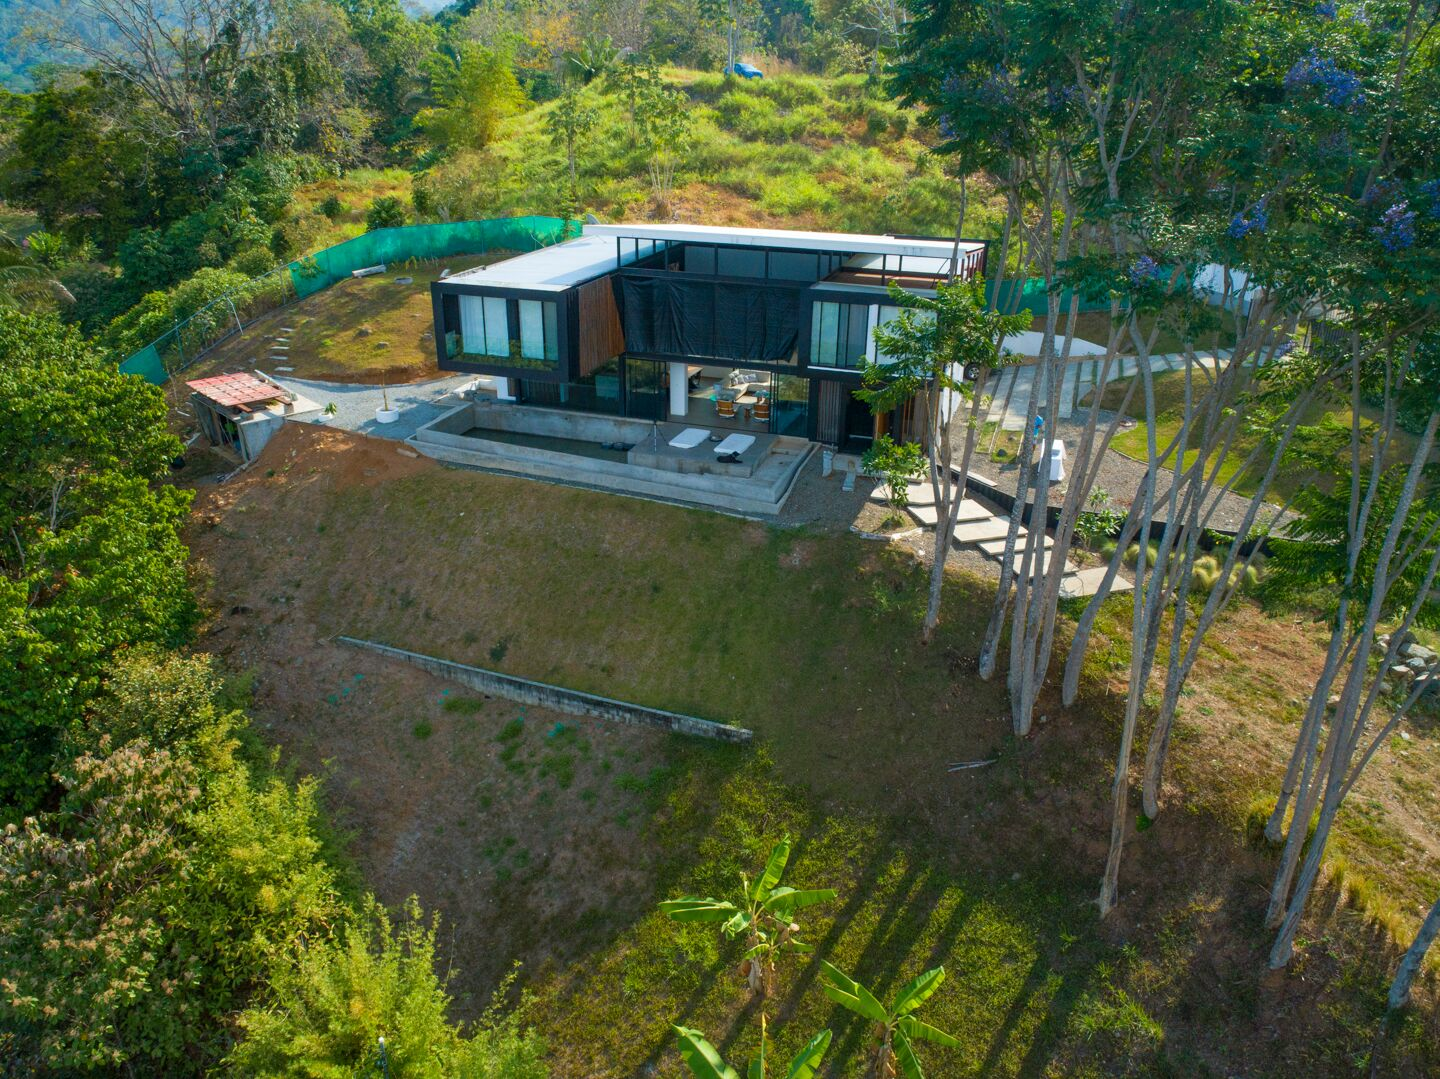 Modern Shipping Container Home 0.64 acres - 3 bedroom modern ocean view home built with